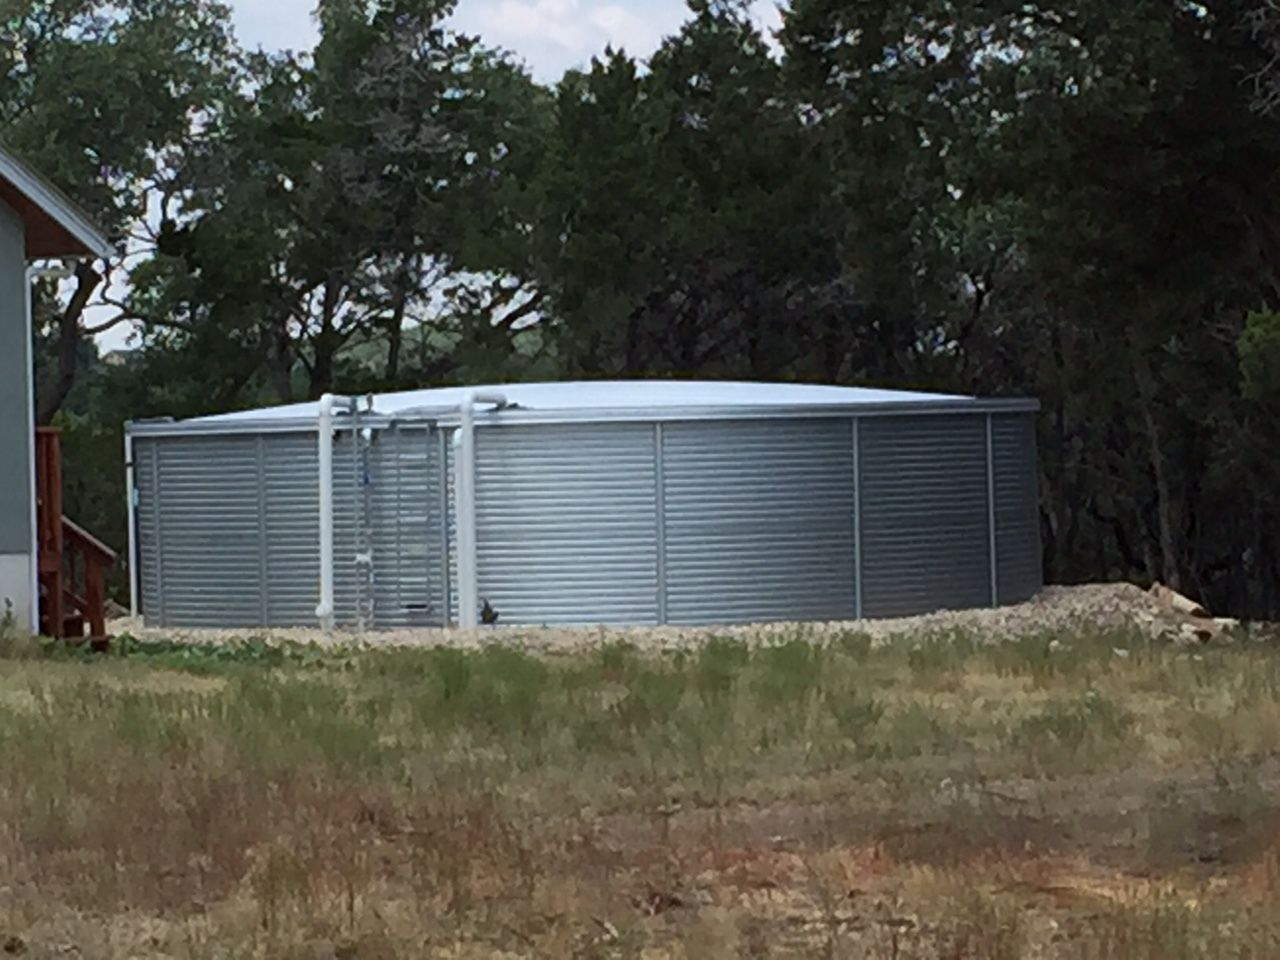 A 40 000 Whole House Rainwater Collection Tank Located In Terrascena Dripping Spr Rain Water Collection Rain Water Collection System Rain Water Collection Diy